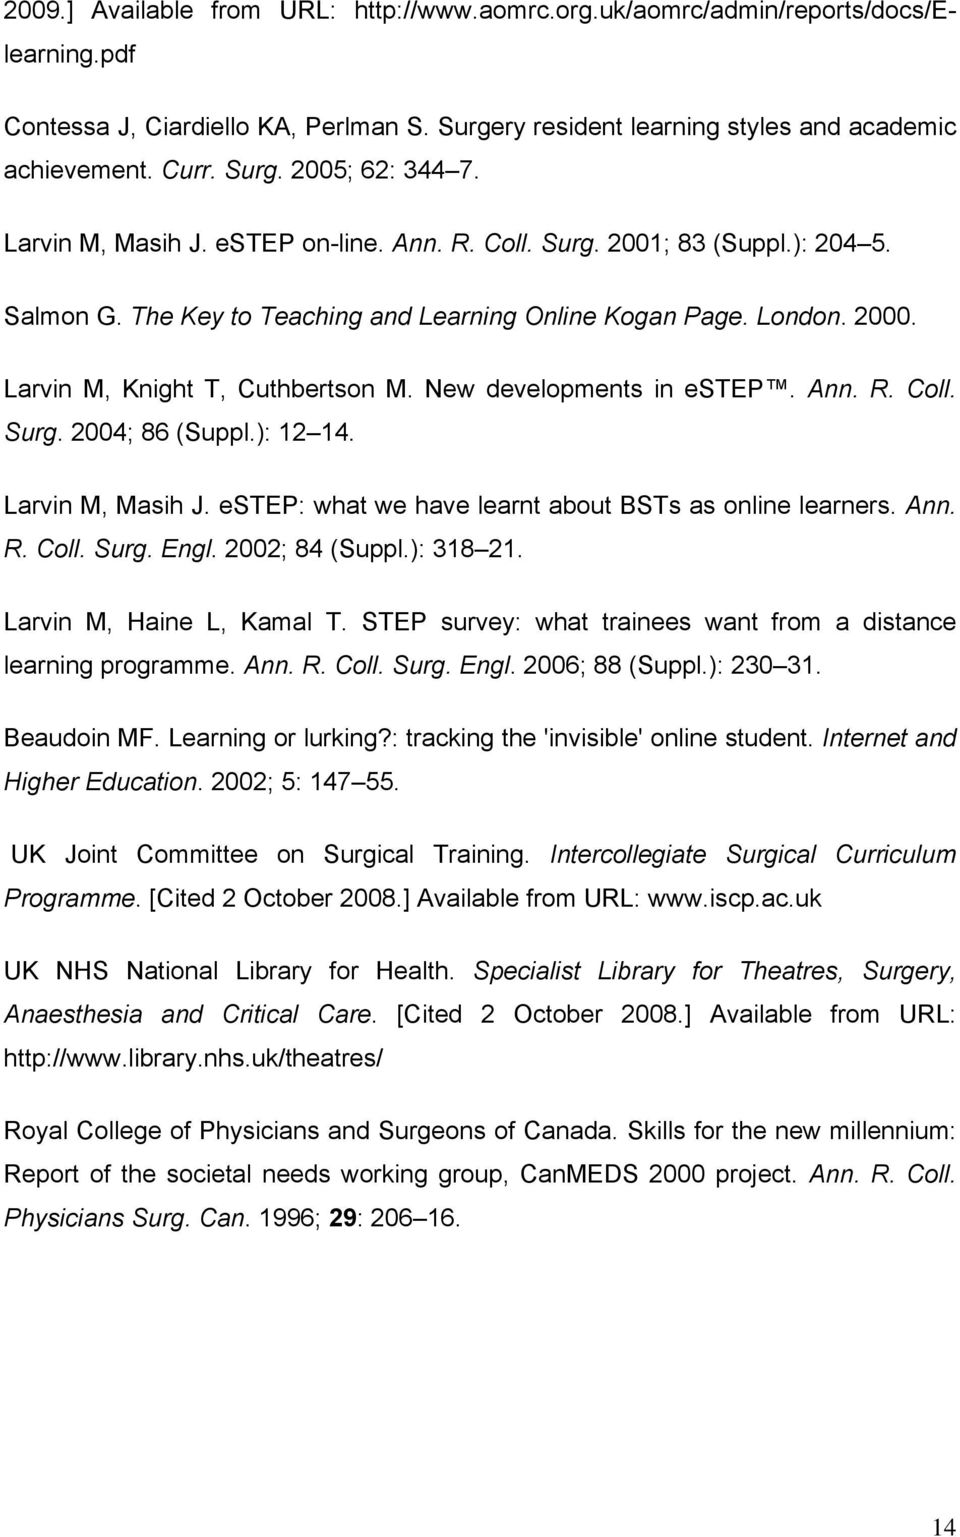 New developments in estep. Ann. R. Coll. Surg. 2004; 86 (Suppl.): 12 14. Larvin M, Masih J. estep: what we have learnt about BSTs as online learners. Ann. R. Coll. Surg. Engl. 2002; 84 (Suppl.